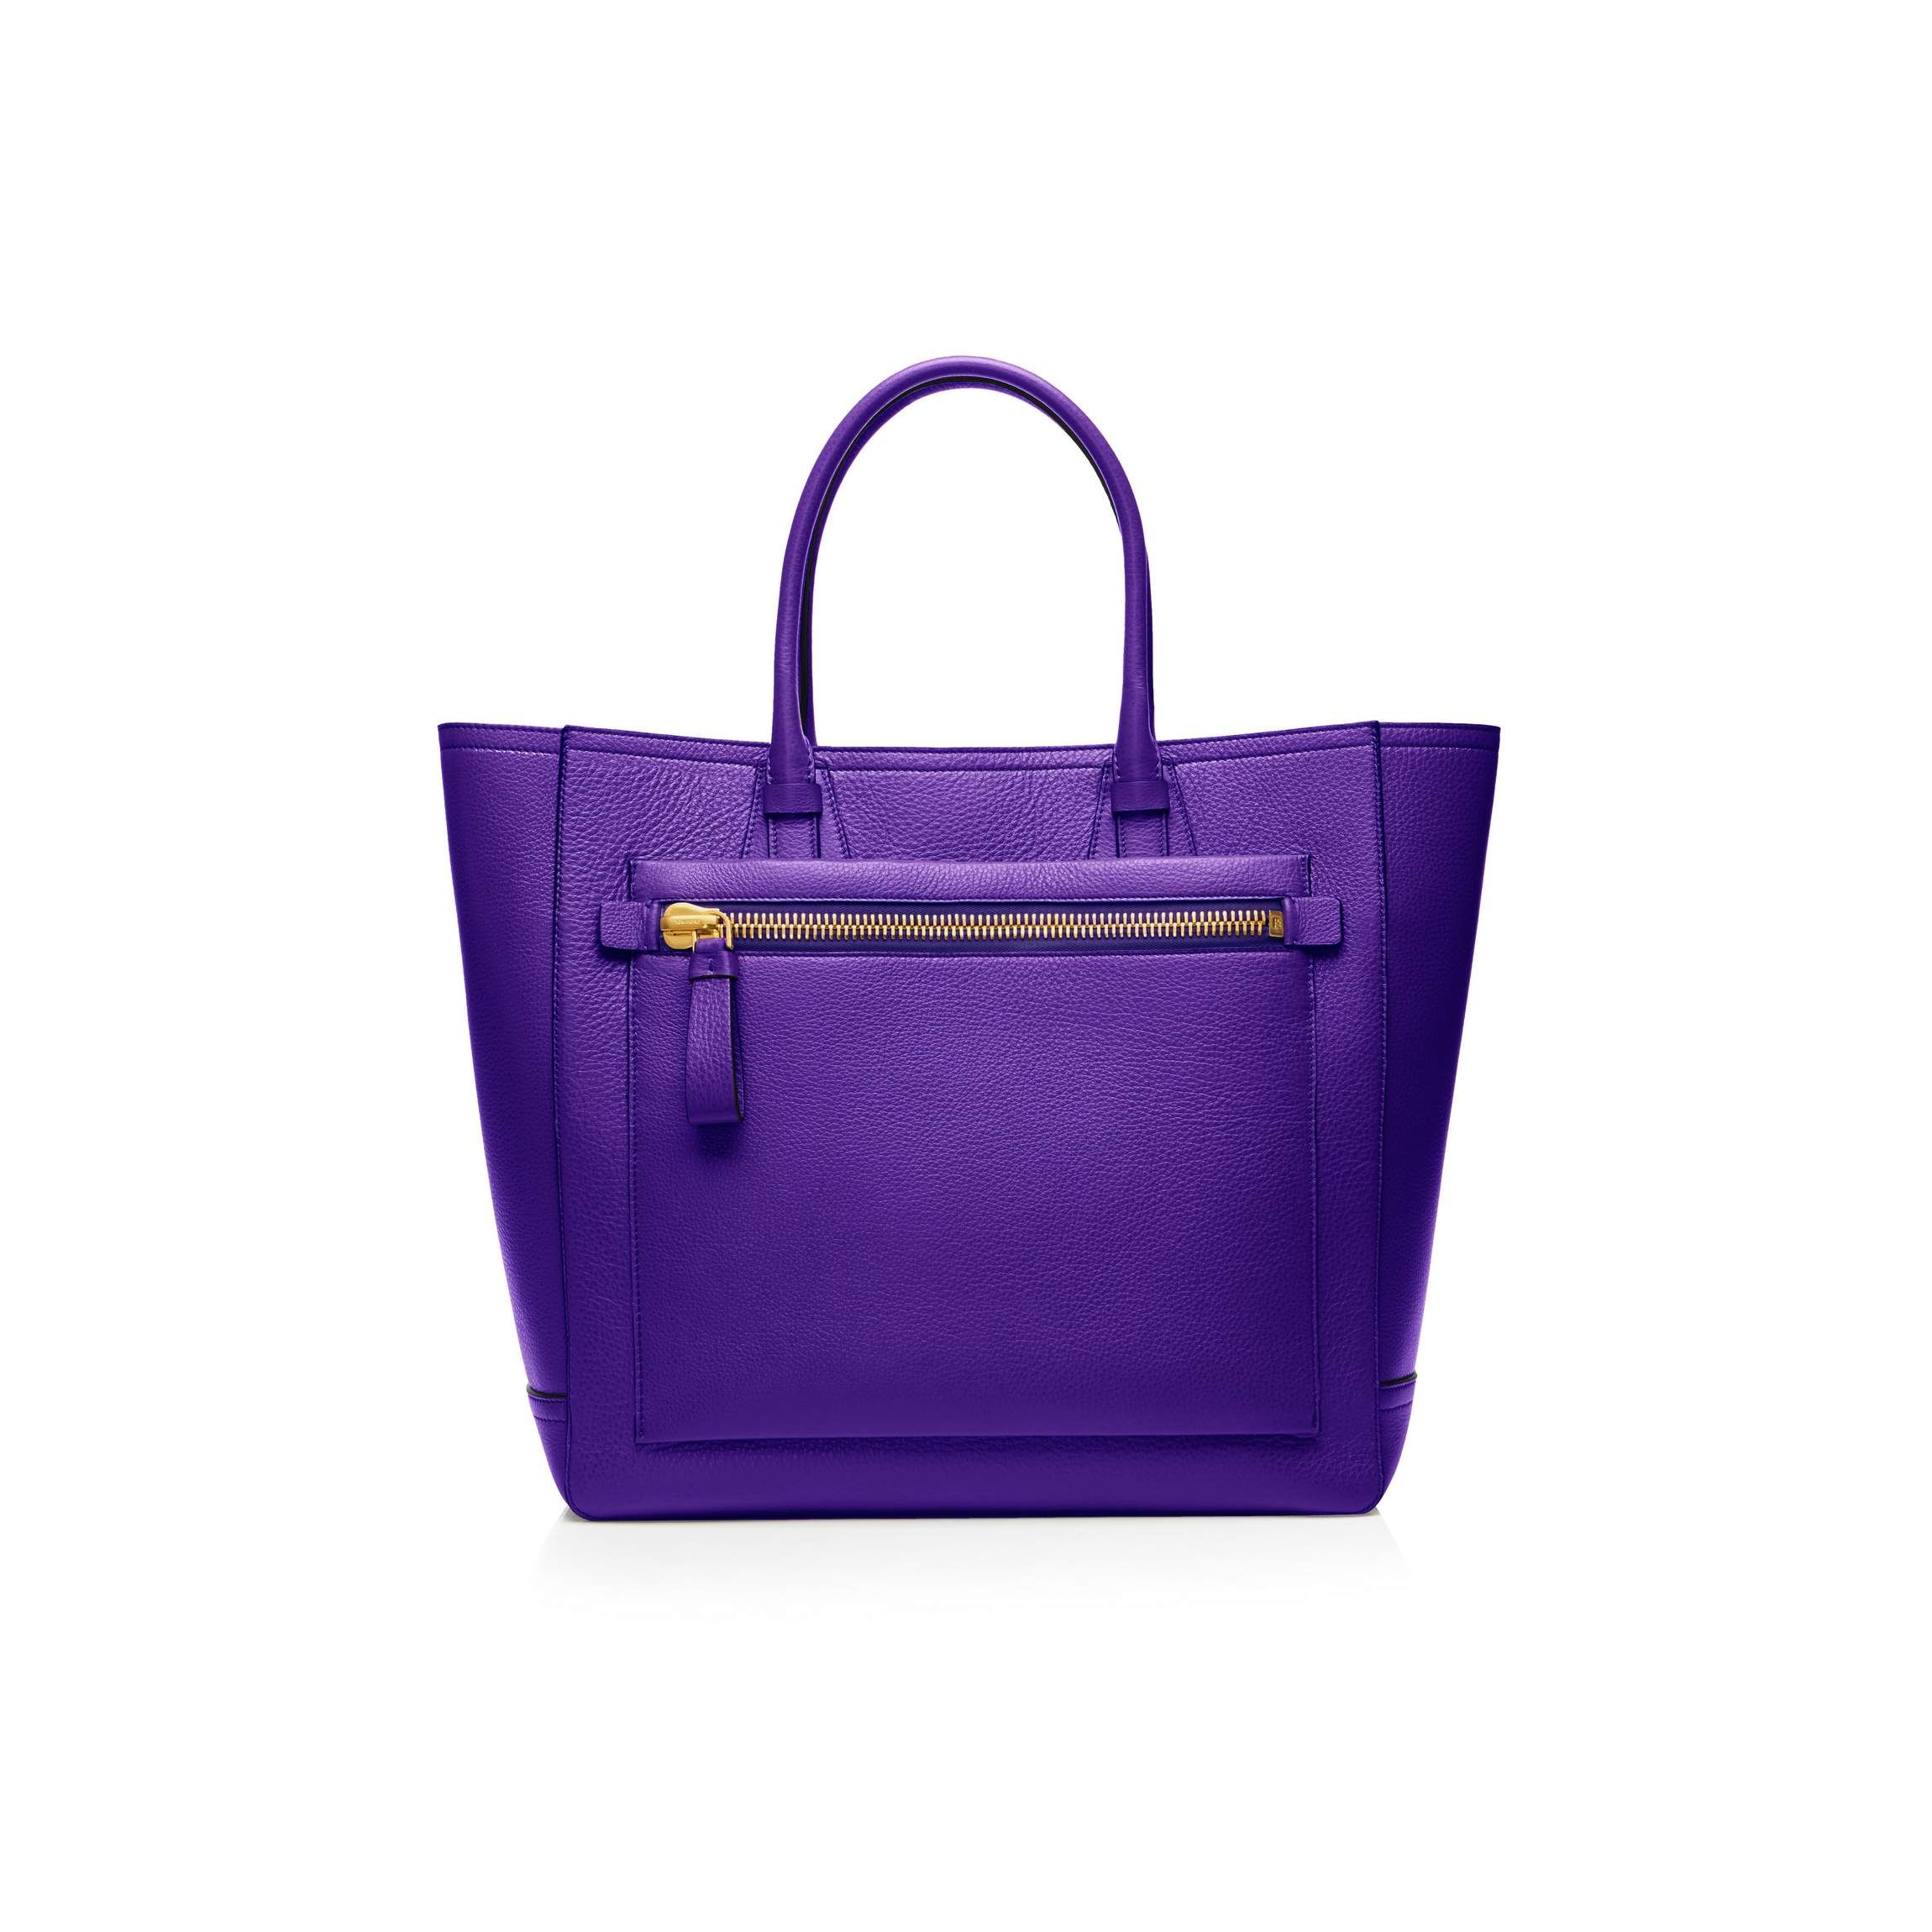 SUMMER TOTE - Tom Ford